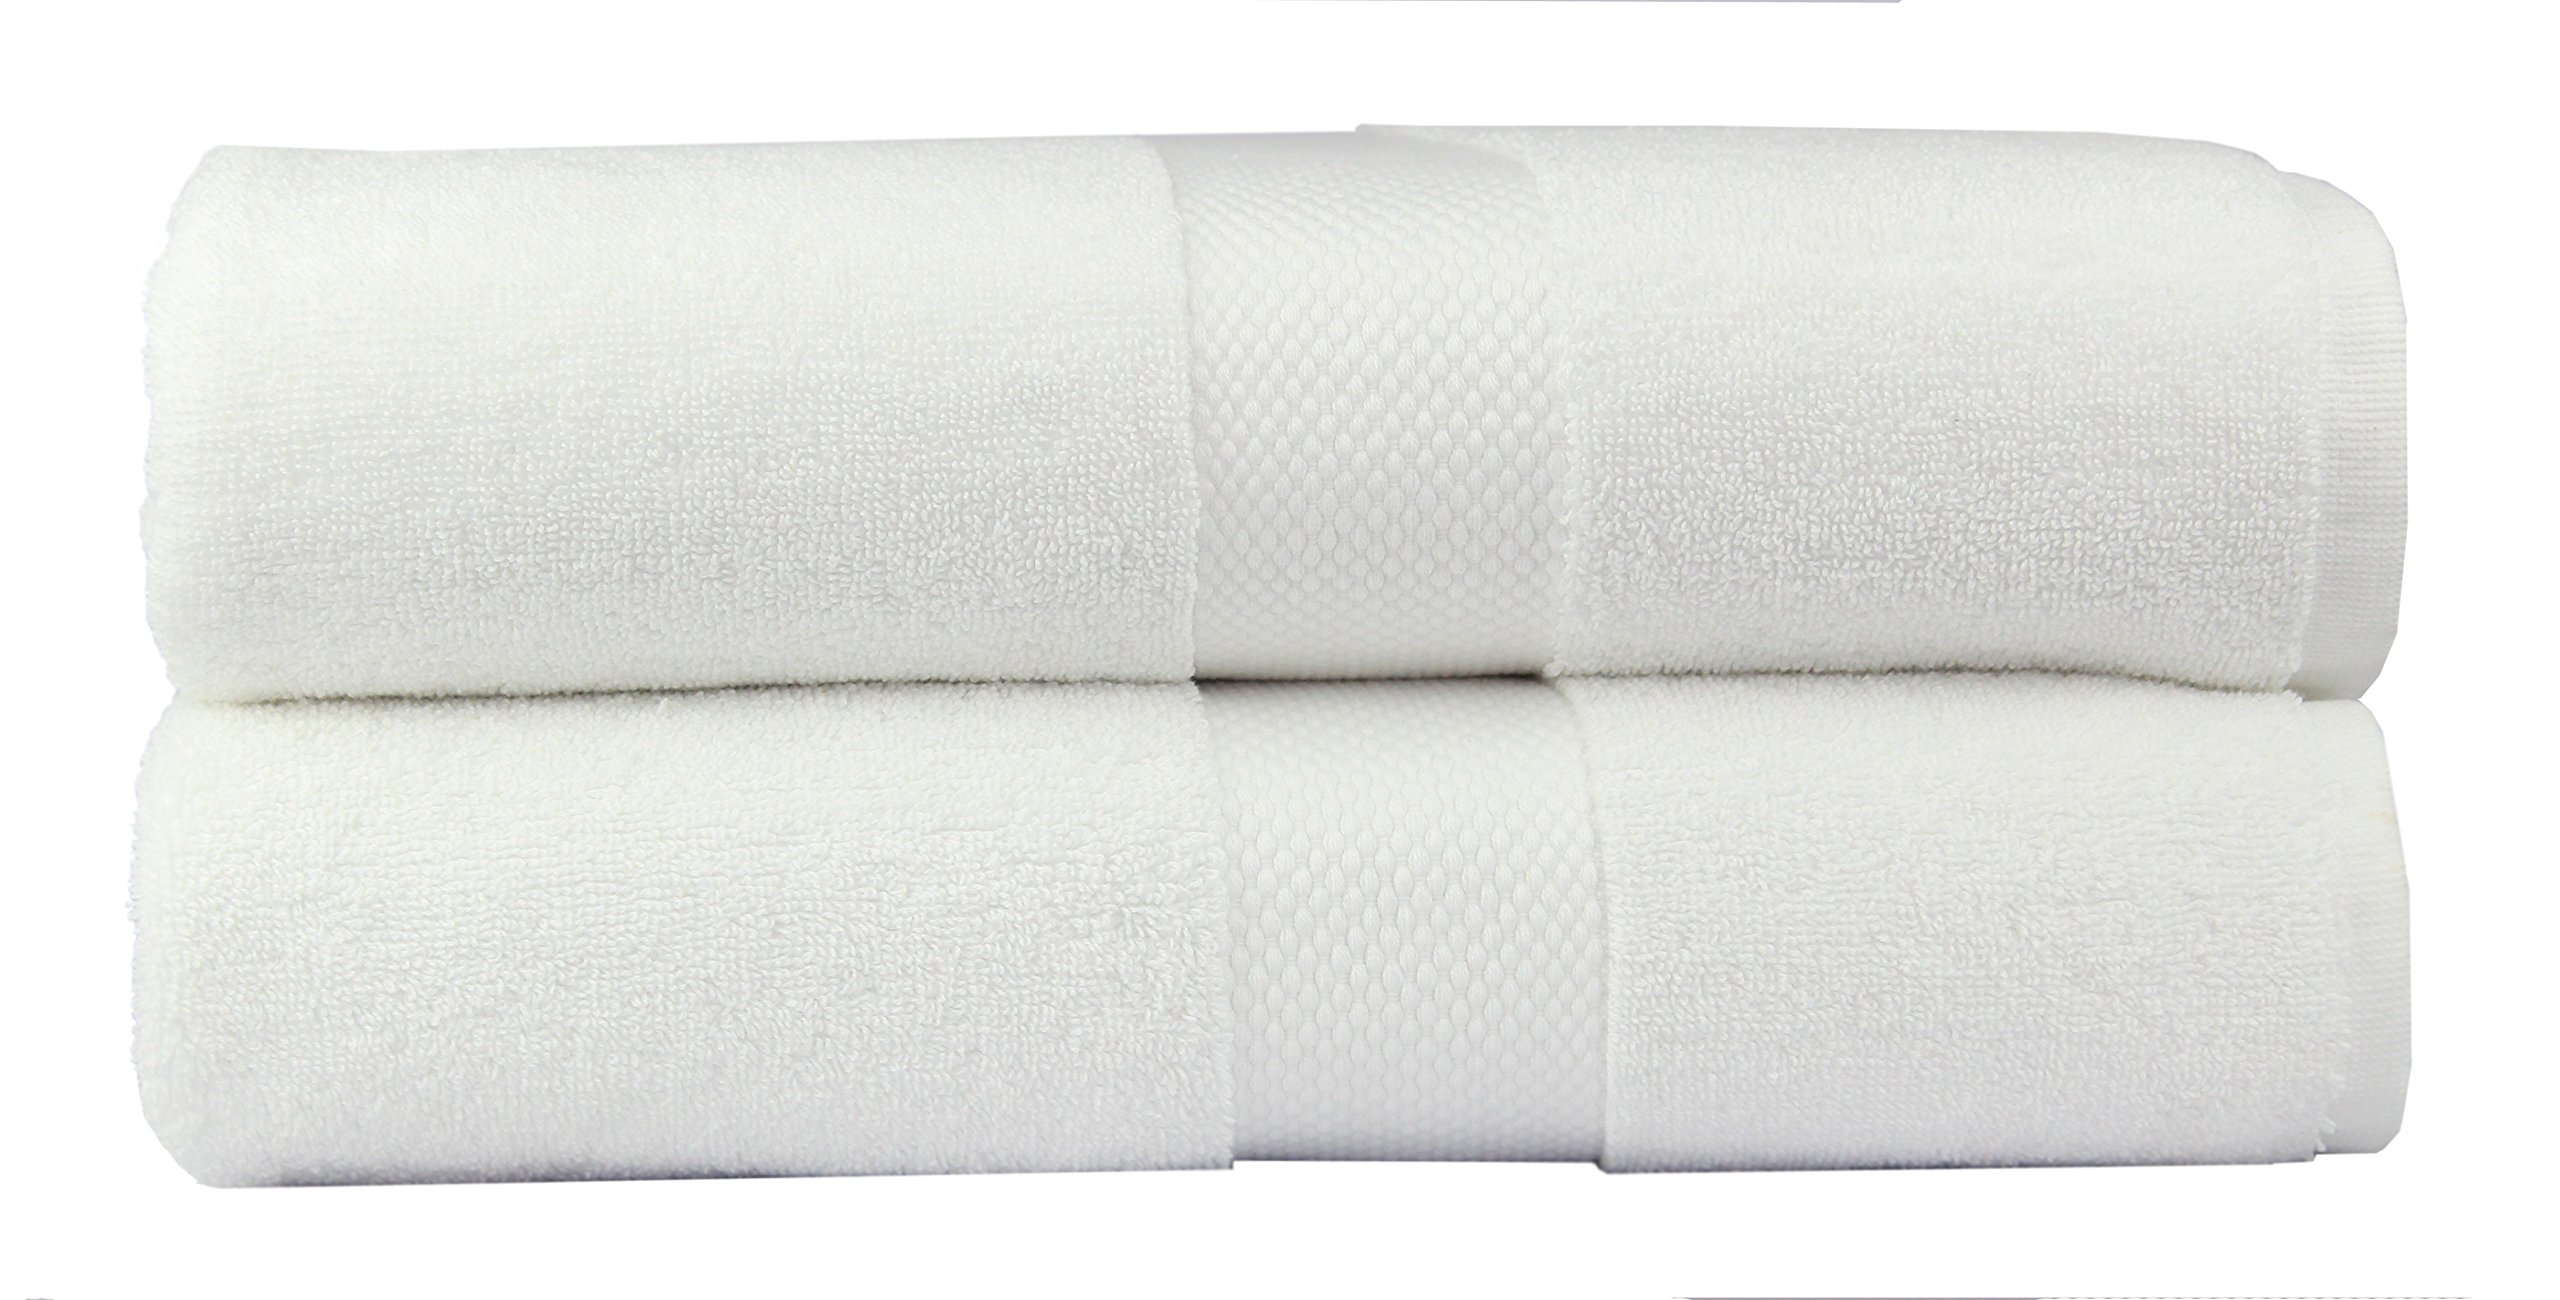 Cotton Craft - 2 Pack Luxuriously Oversized Hotel Bath Sheet - White - 100% Ringspun Cotton - 40x80 - Heavy Weight 700 Grams - 2 Ply Construction - Highly Absorbent - Easy Care Machine Wash